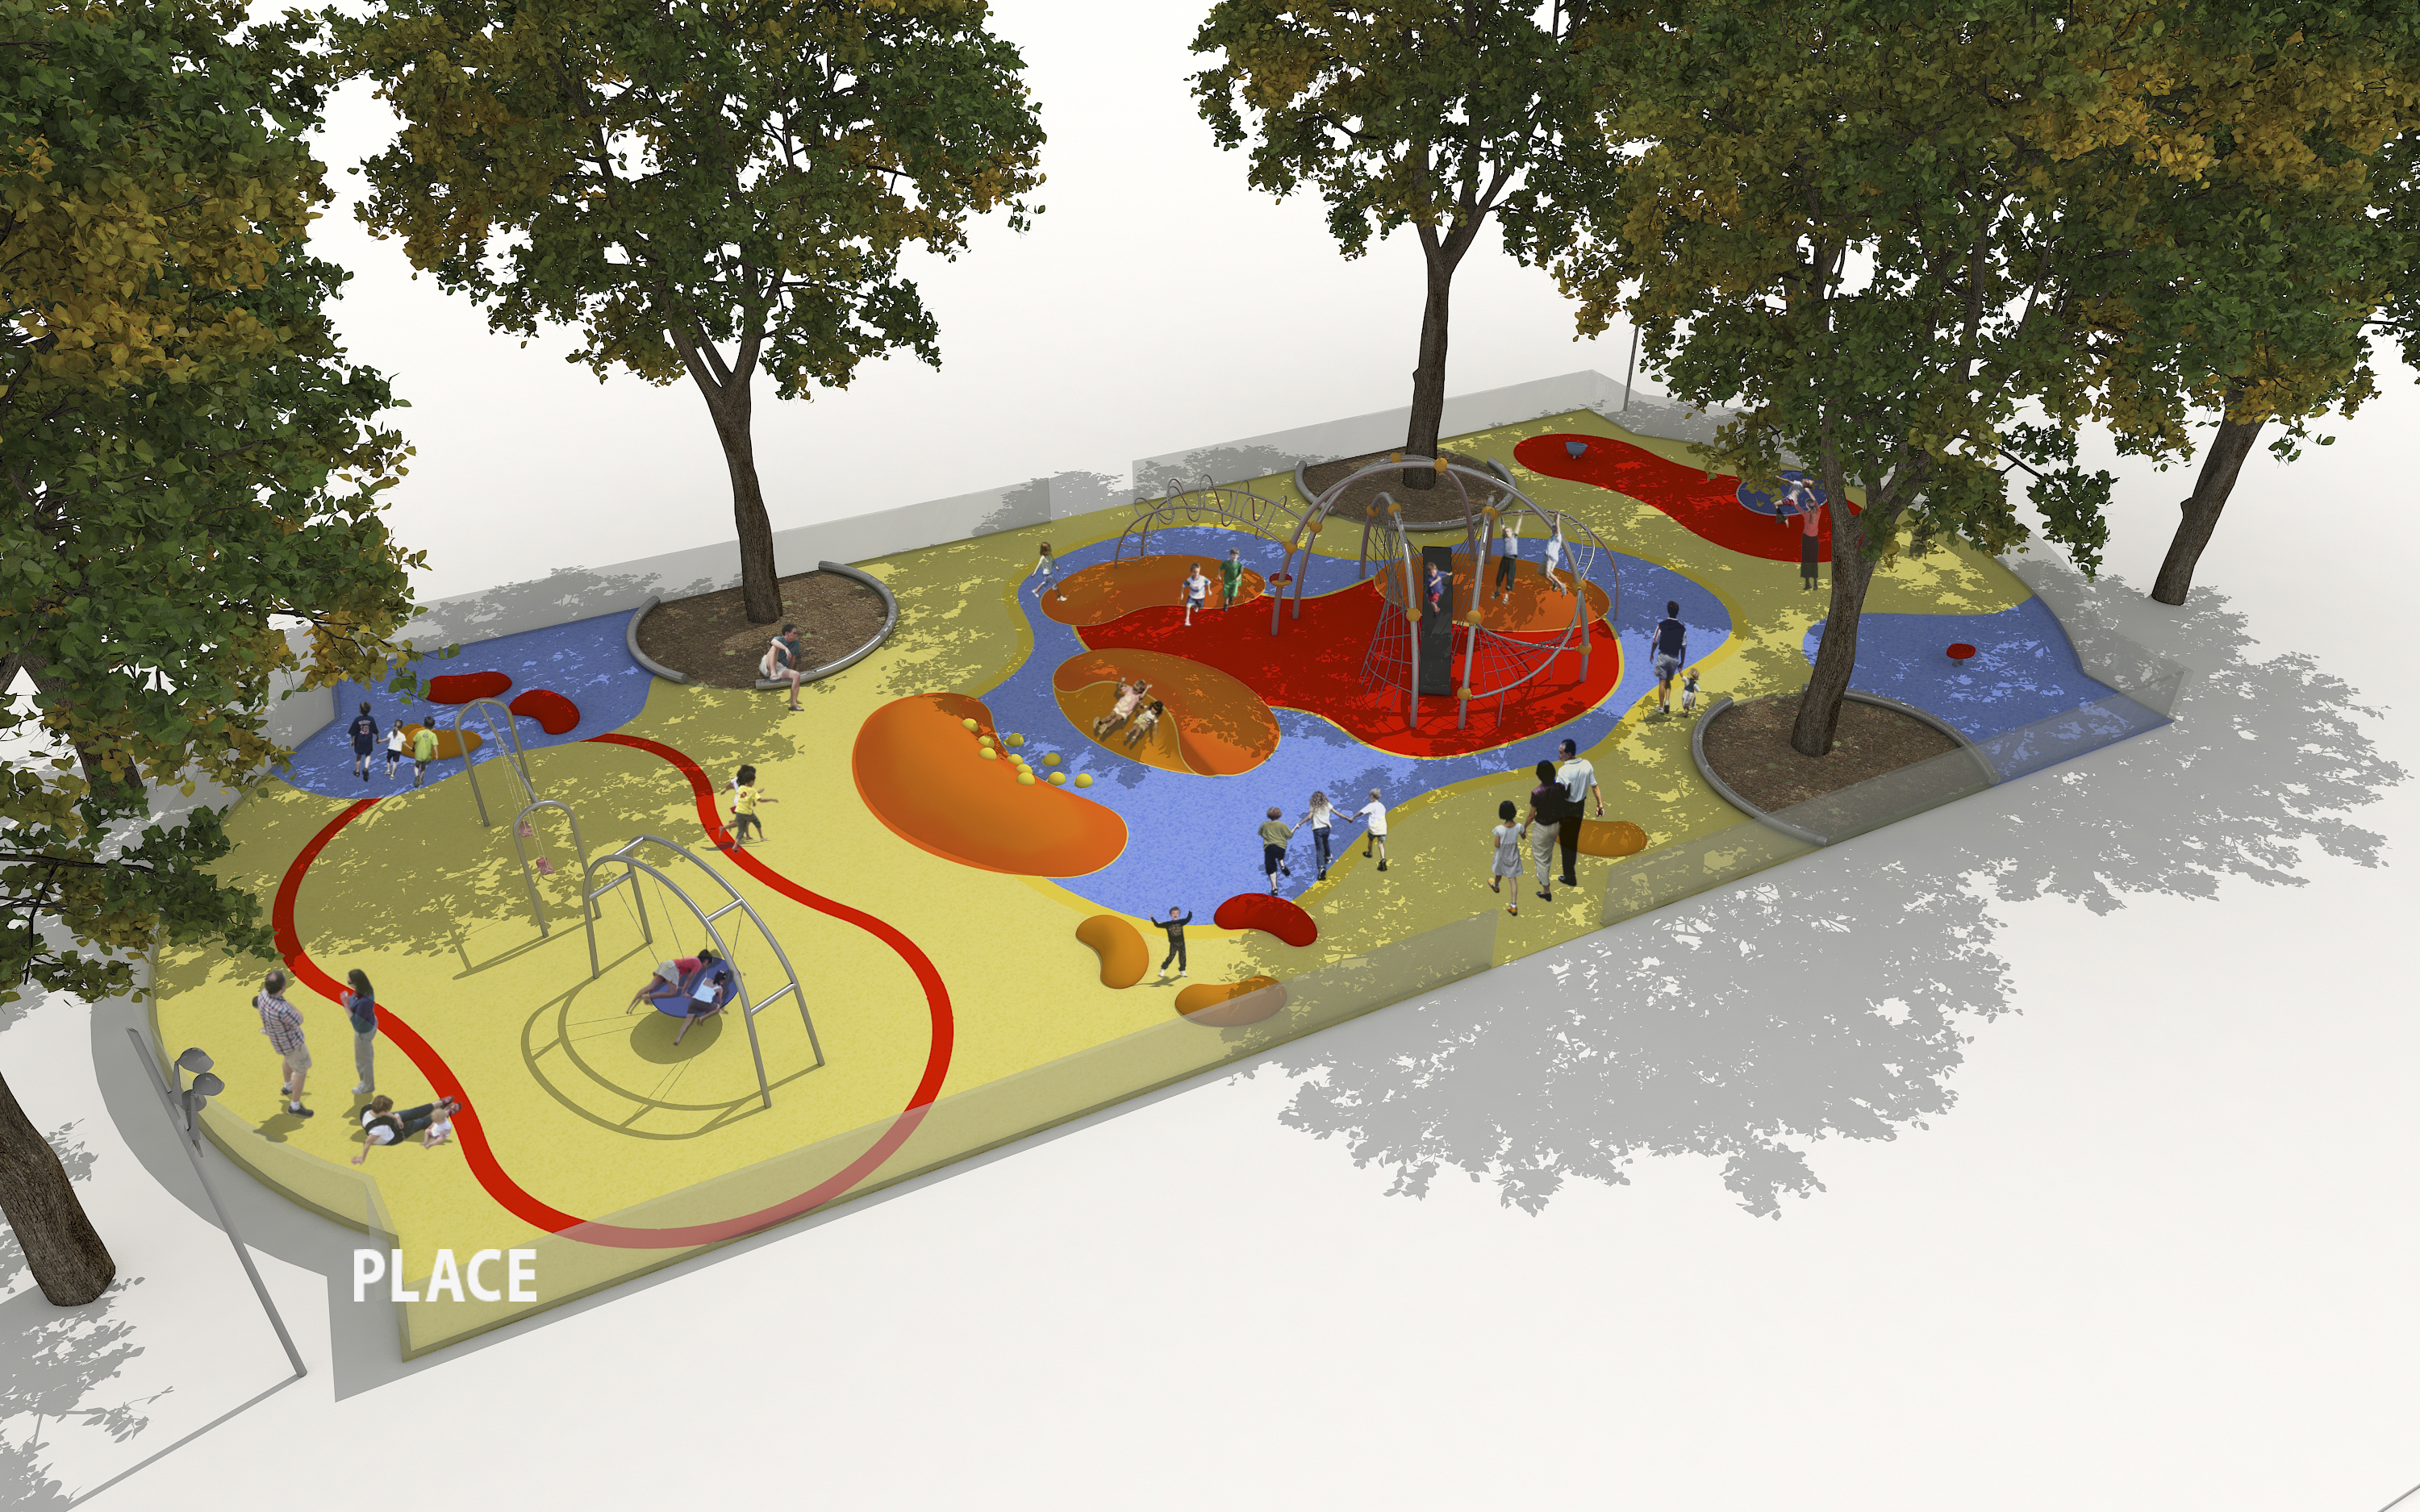 New playground rendering